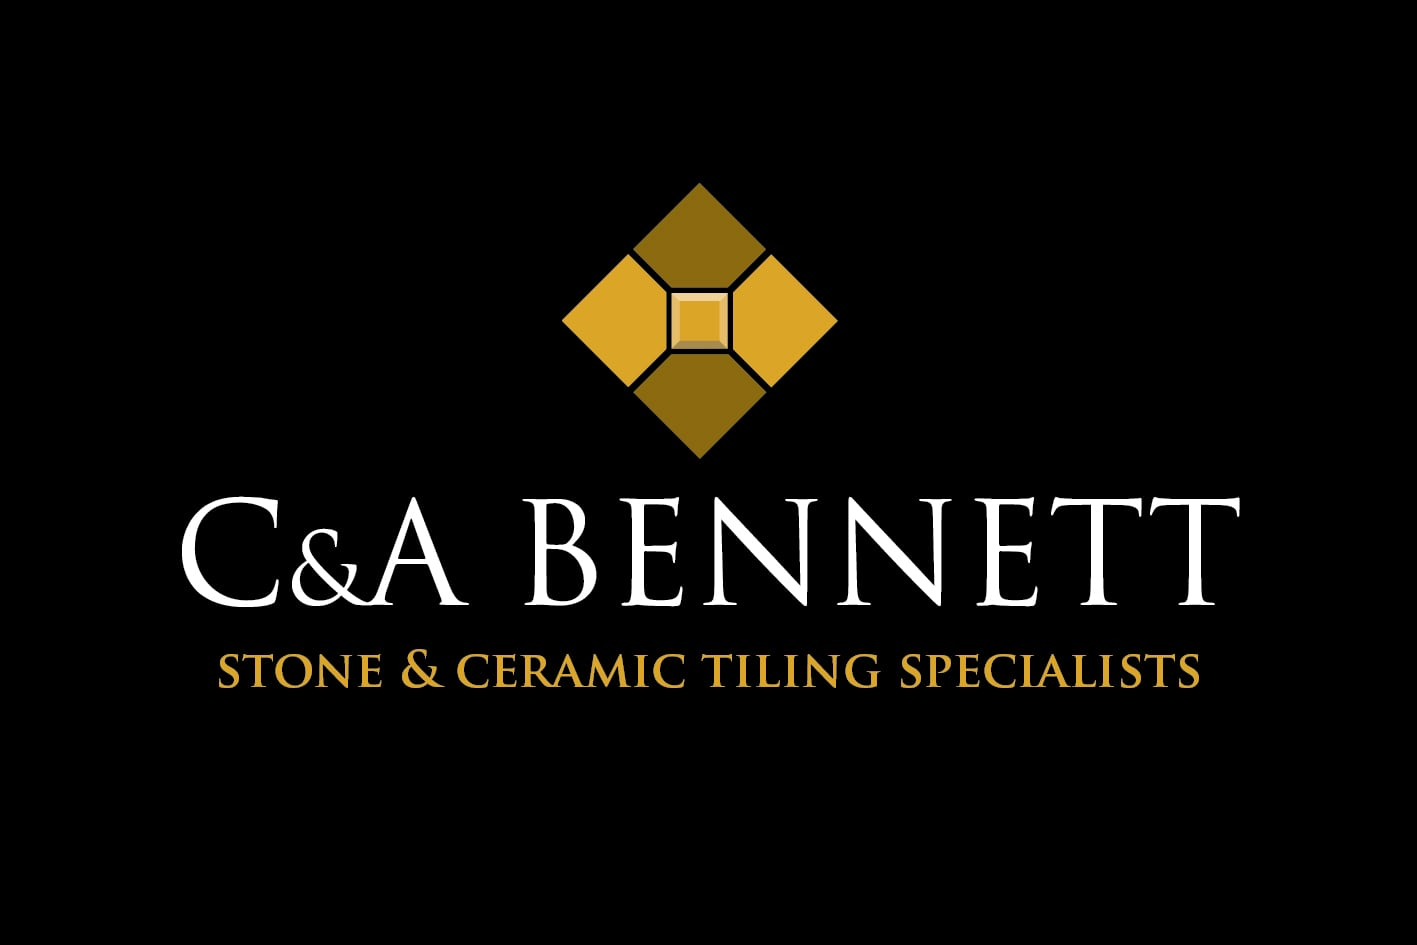 C & A Bennett – Stone and Ceramic Tiling Specialists